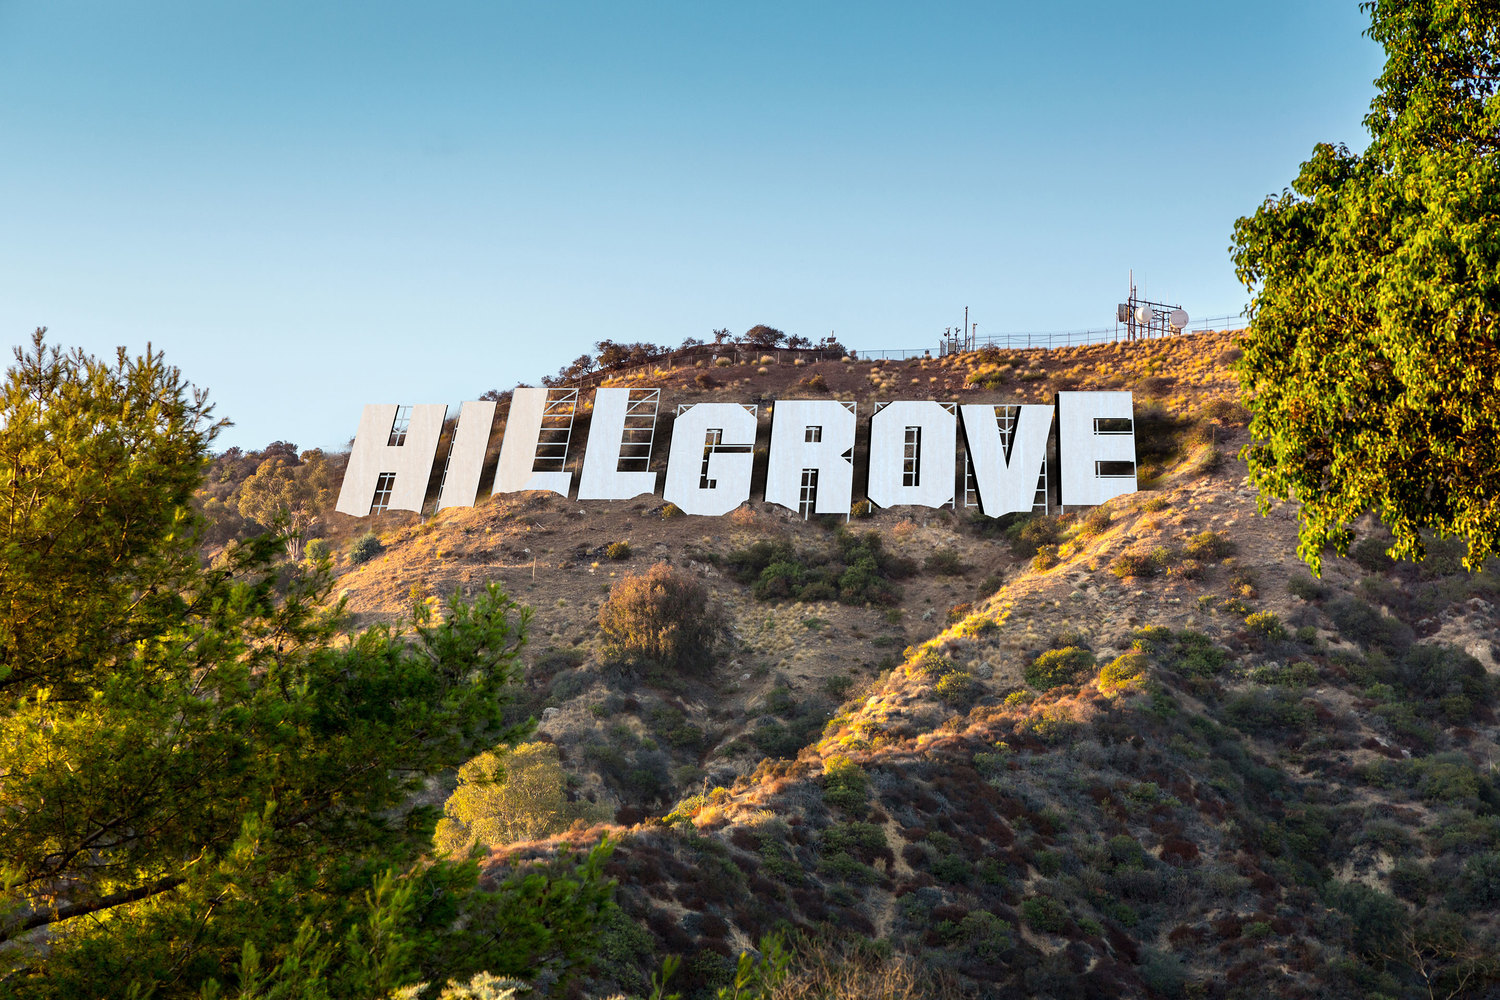 Hillgrove Hollywood Sign.jpg